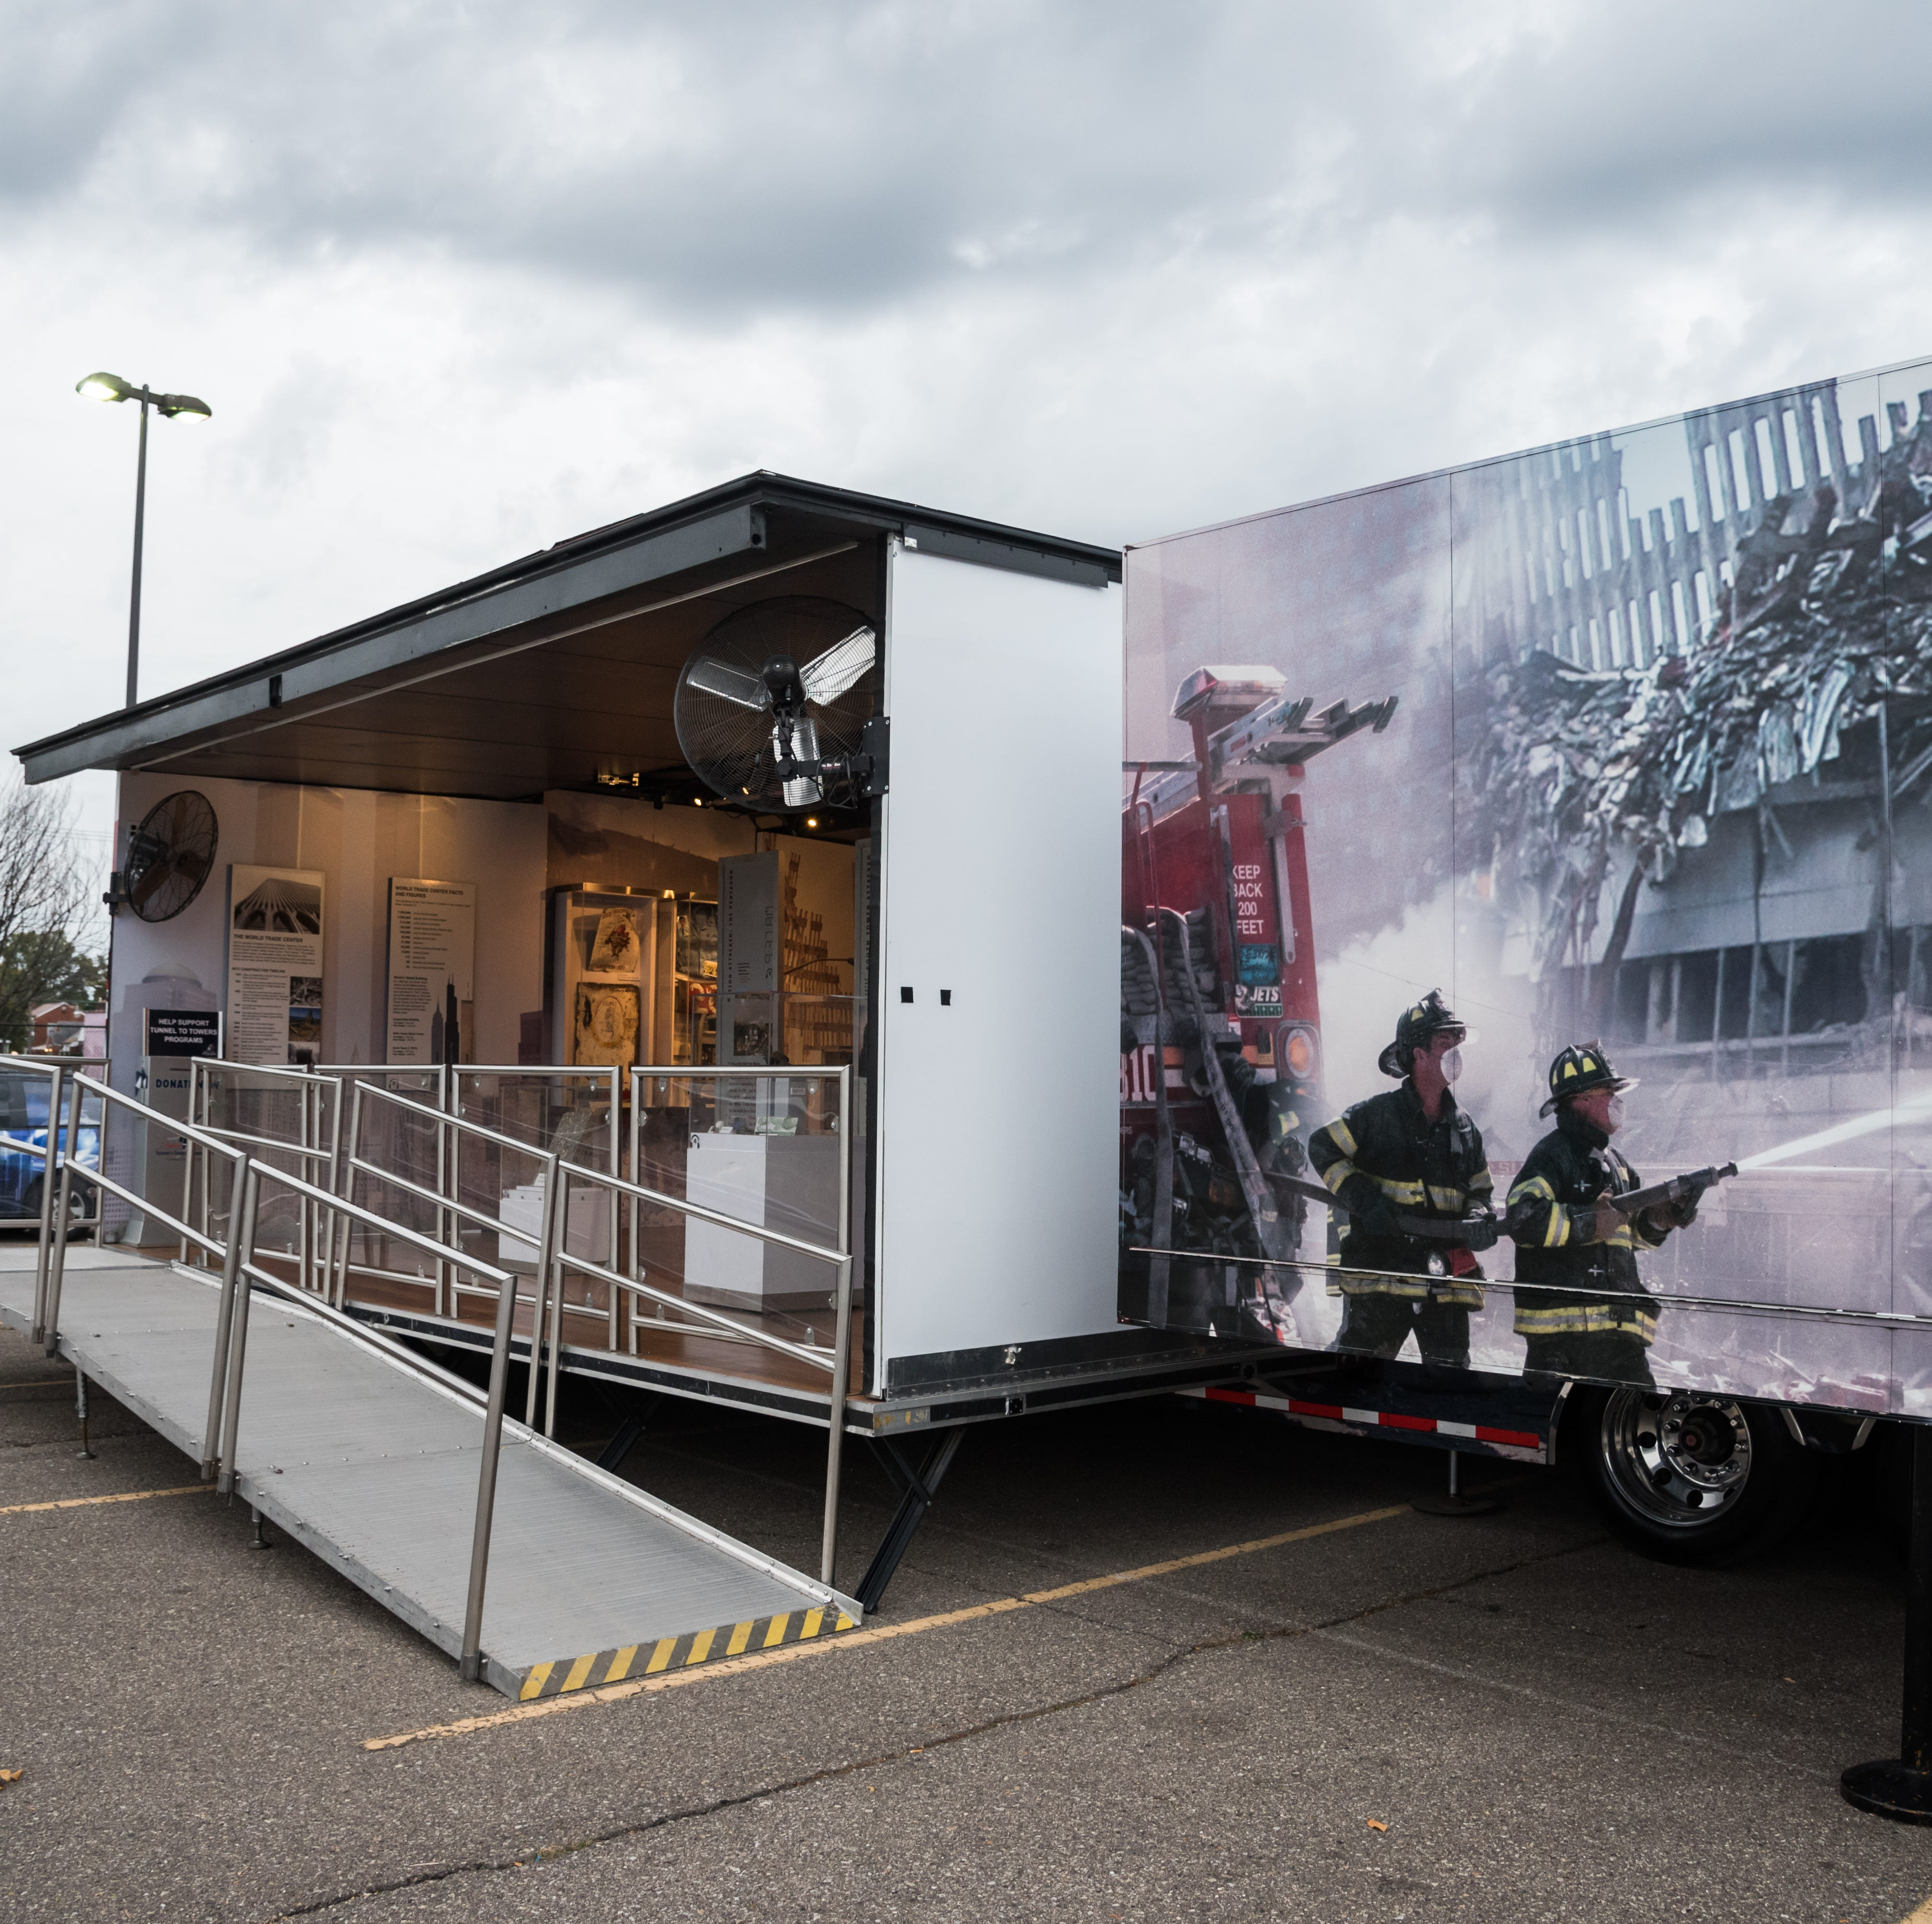 Mobile 9/11 exhibit coming to Millersburg